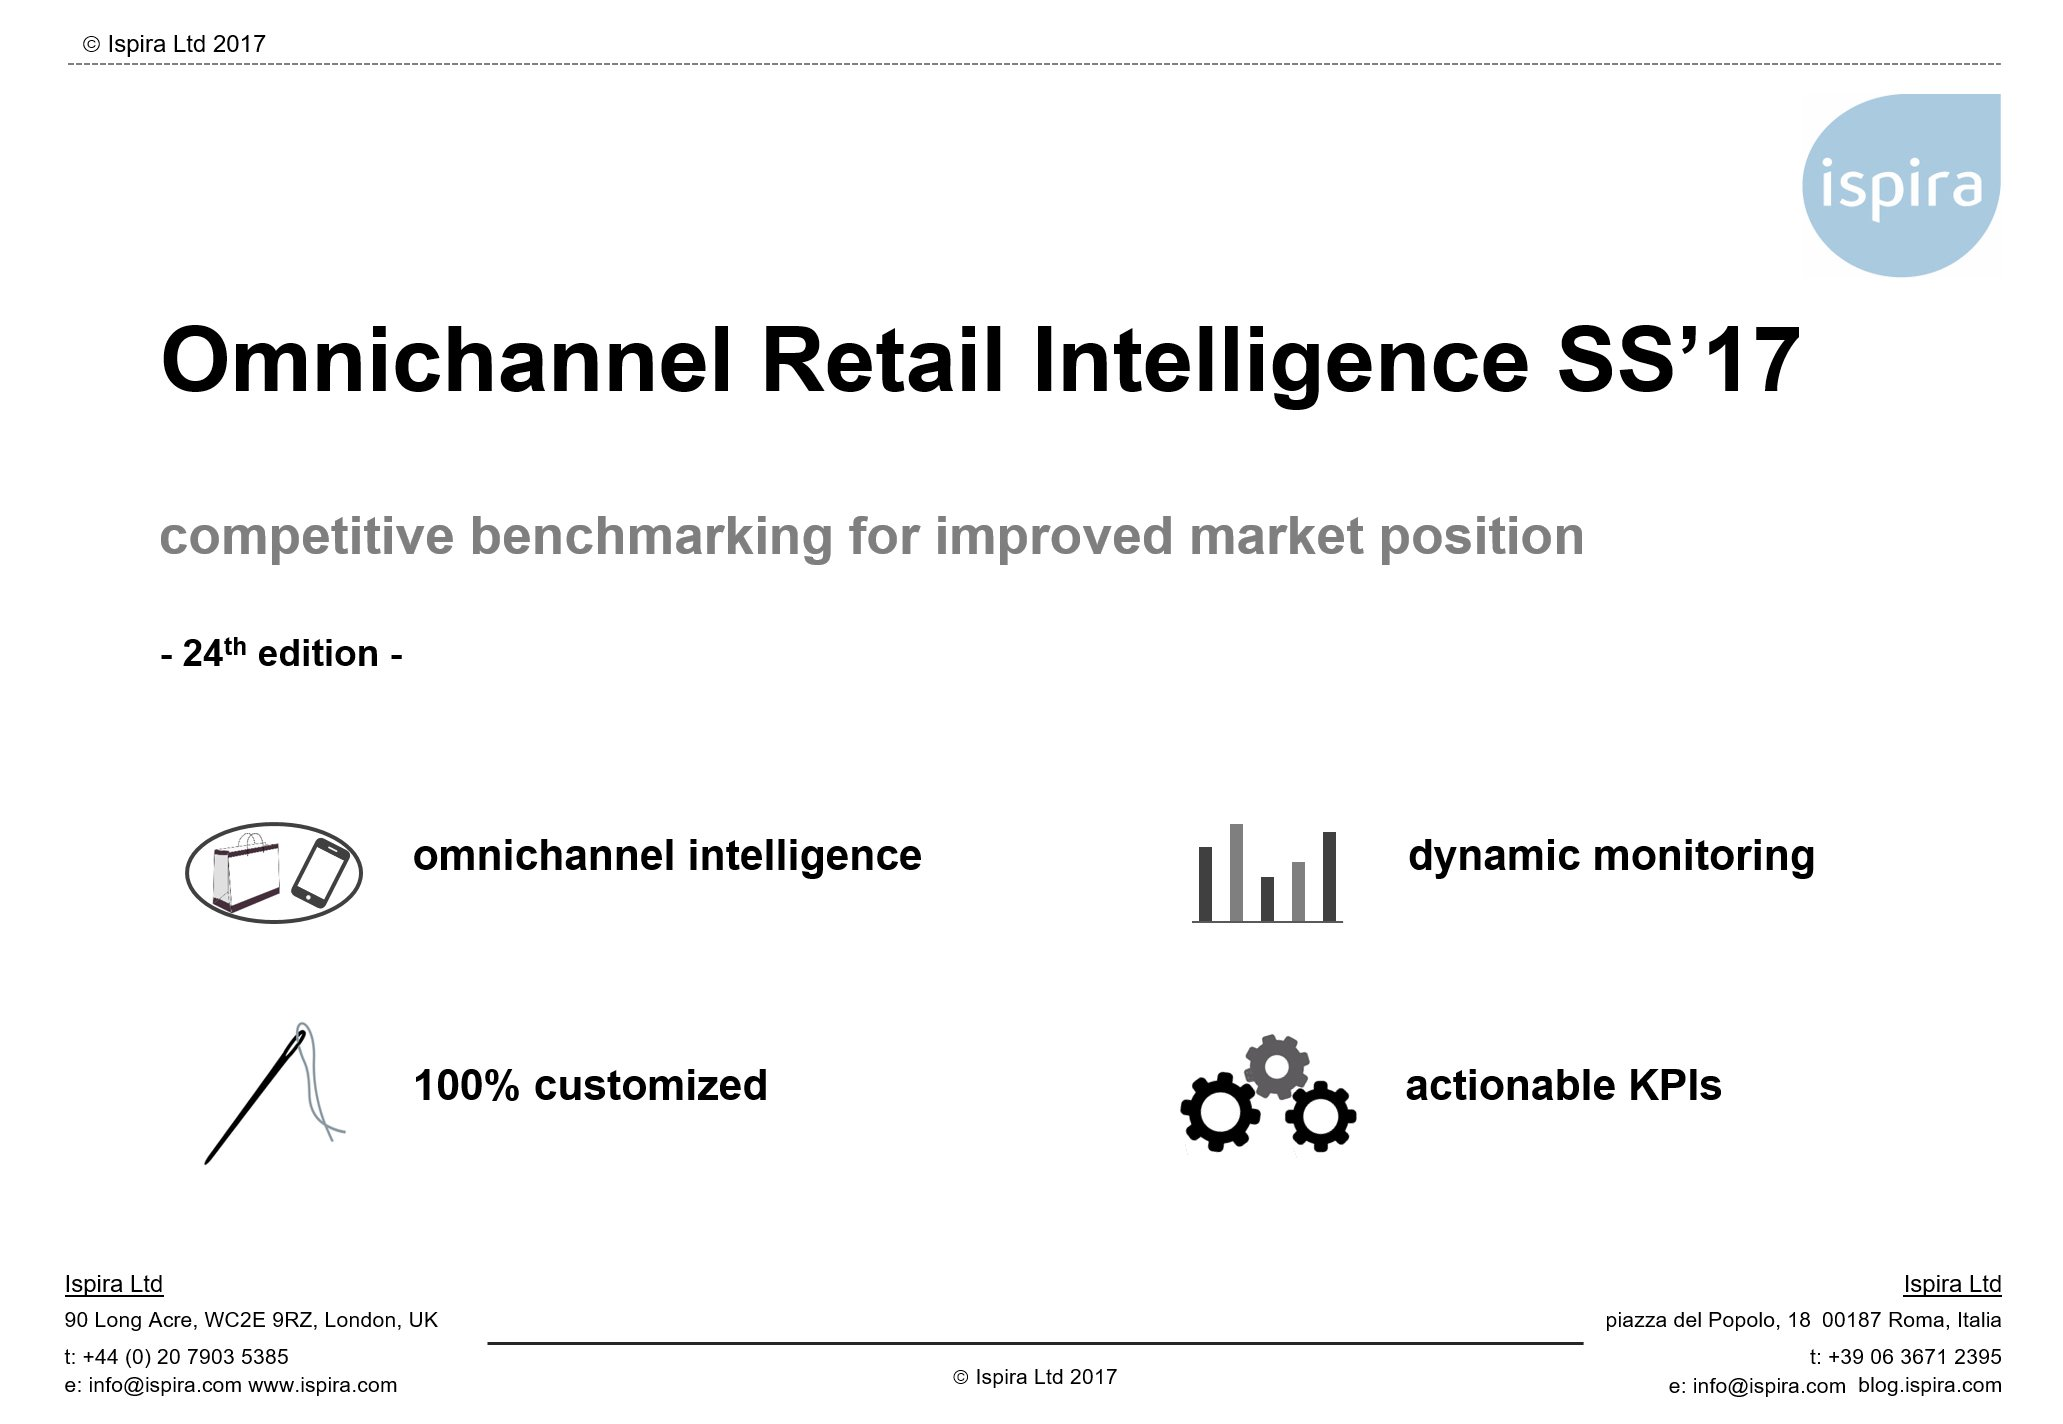 SS 2017 Omnichannel Retail Intelligence - Ispira Ltd